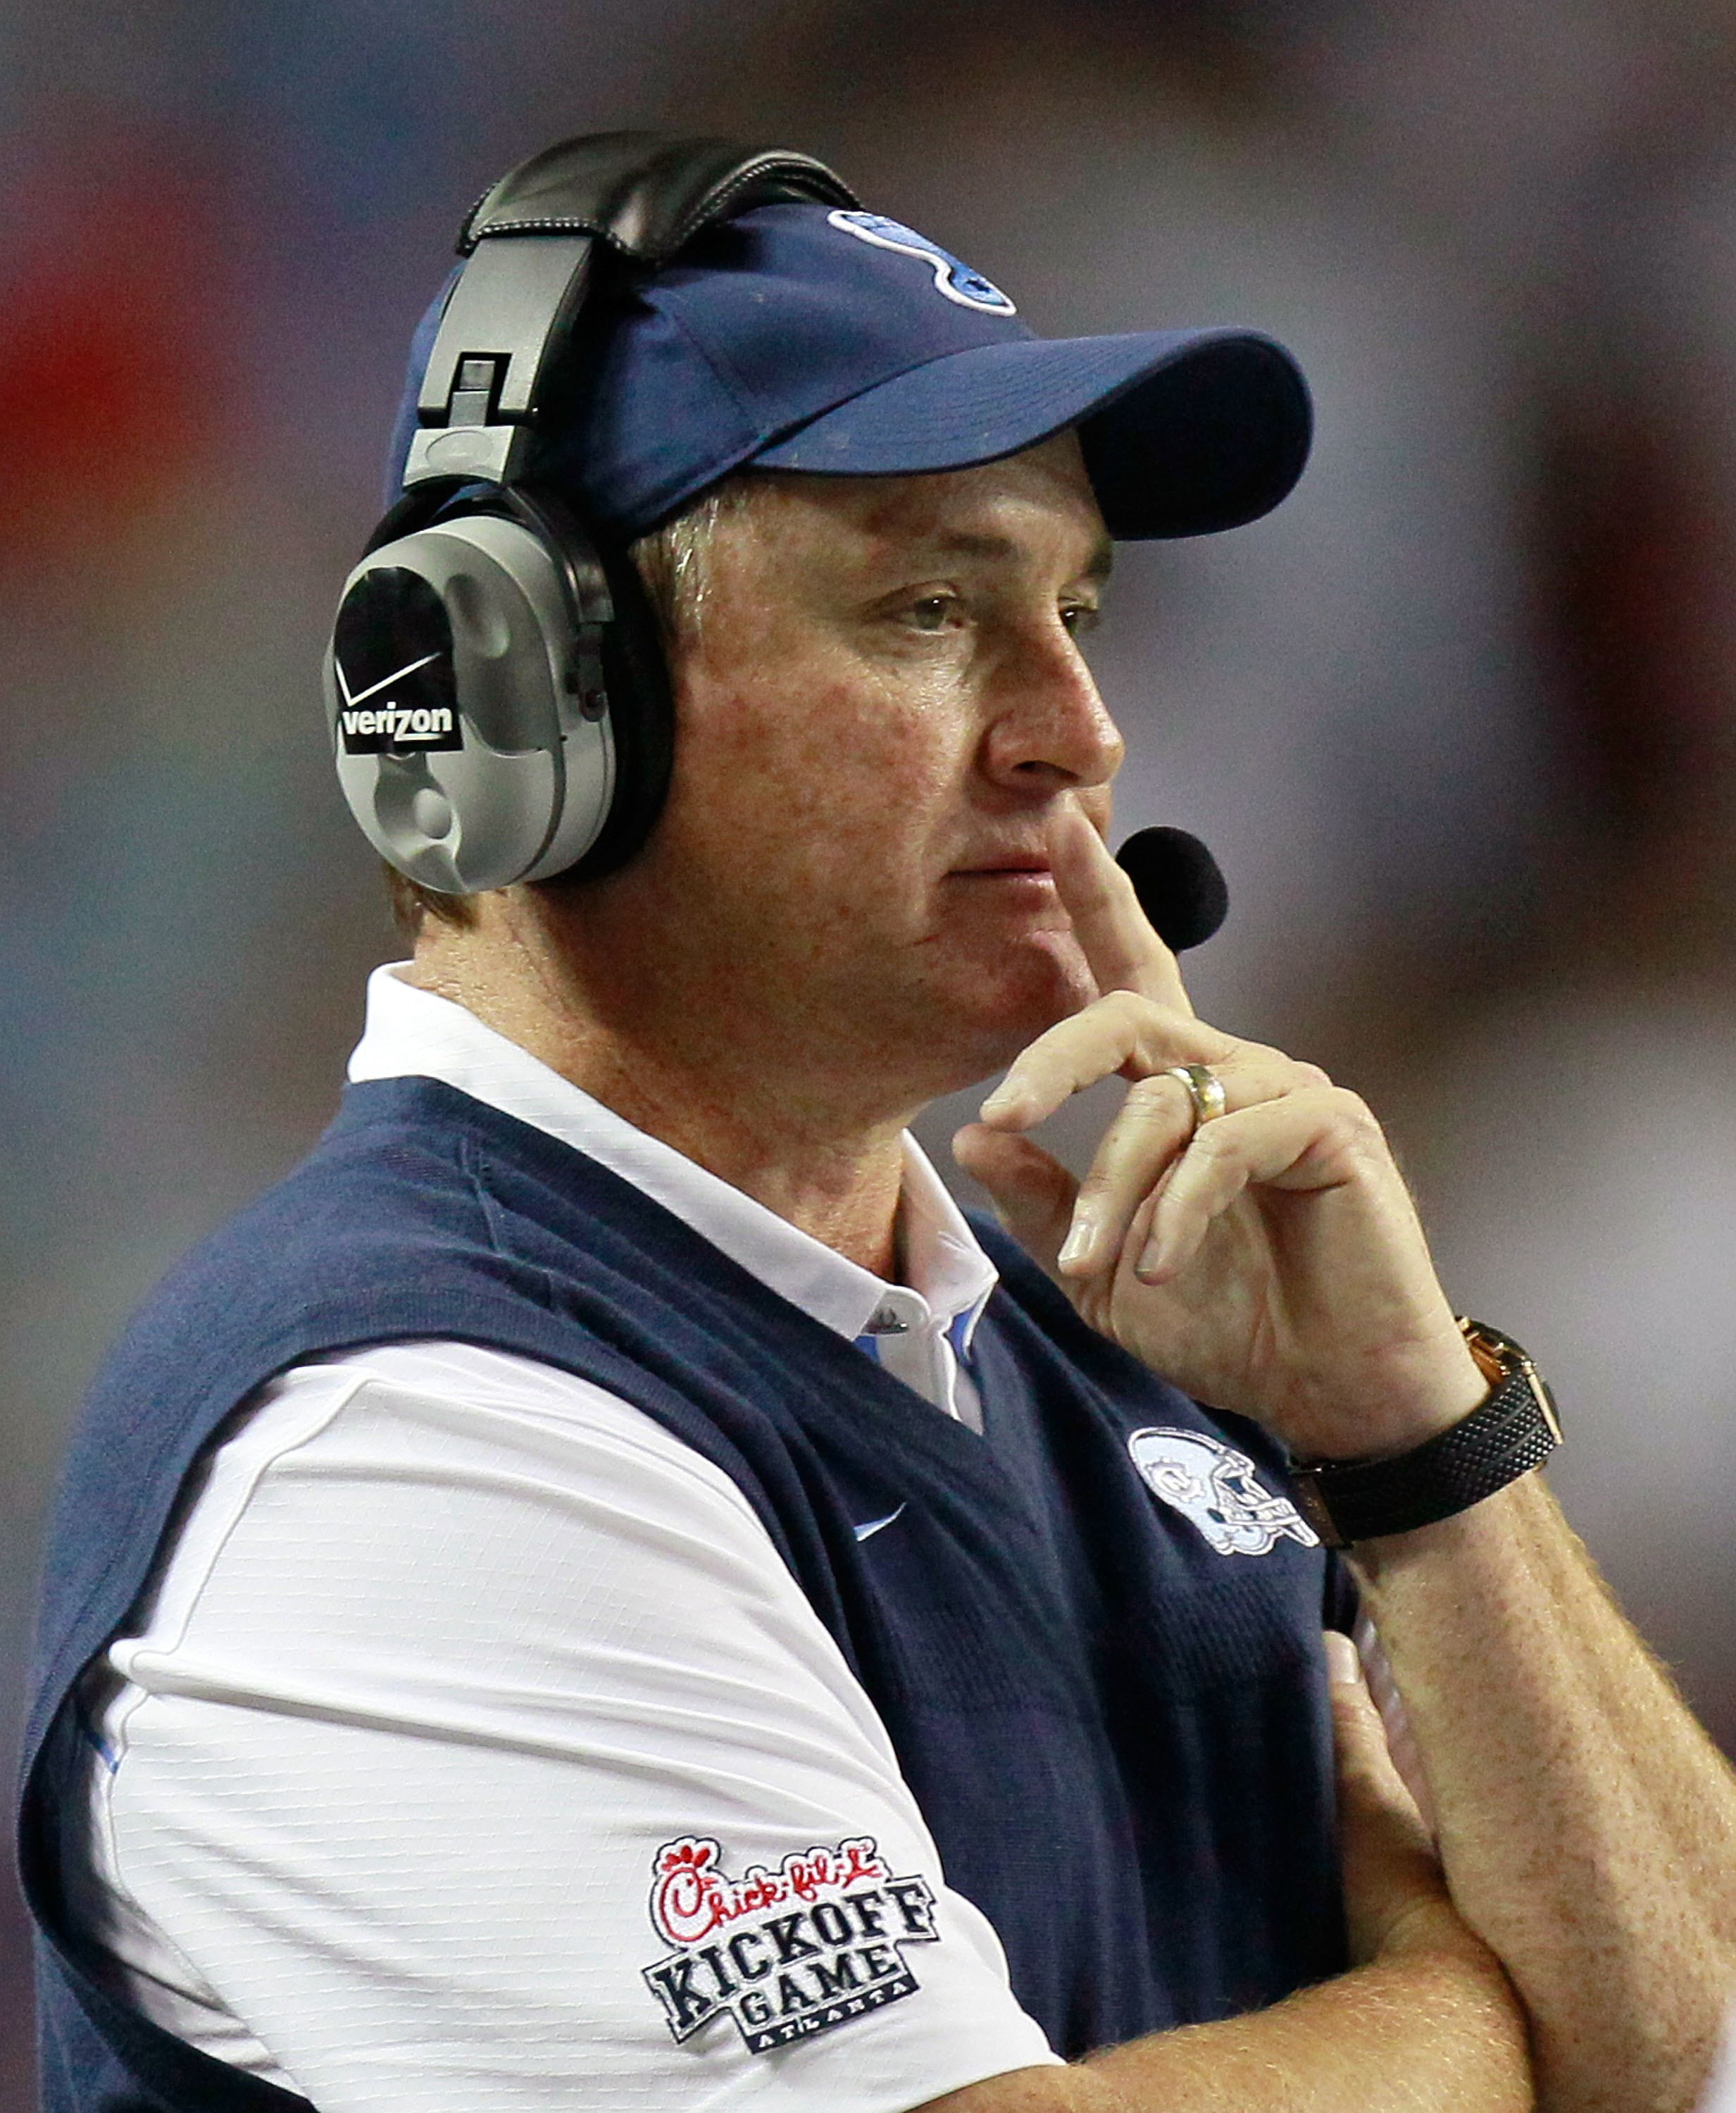 ATLANTA - SEPTEMBER 04:  Head coach Butch Davis of the North Carolina Tar Heels against the LSU Tigers during the Chick-fil-A Kickoff Game at Georgia Dome on September 4, 2010 in Atlanta, Georgia.  (Photo by Kevin C. Cox/Getty Images)